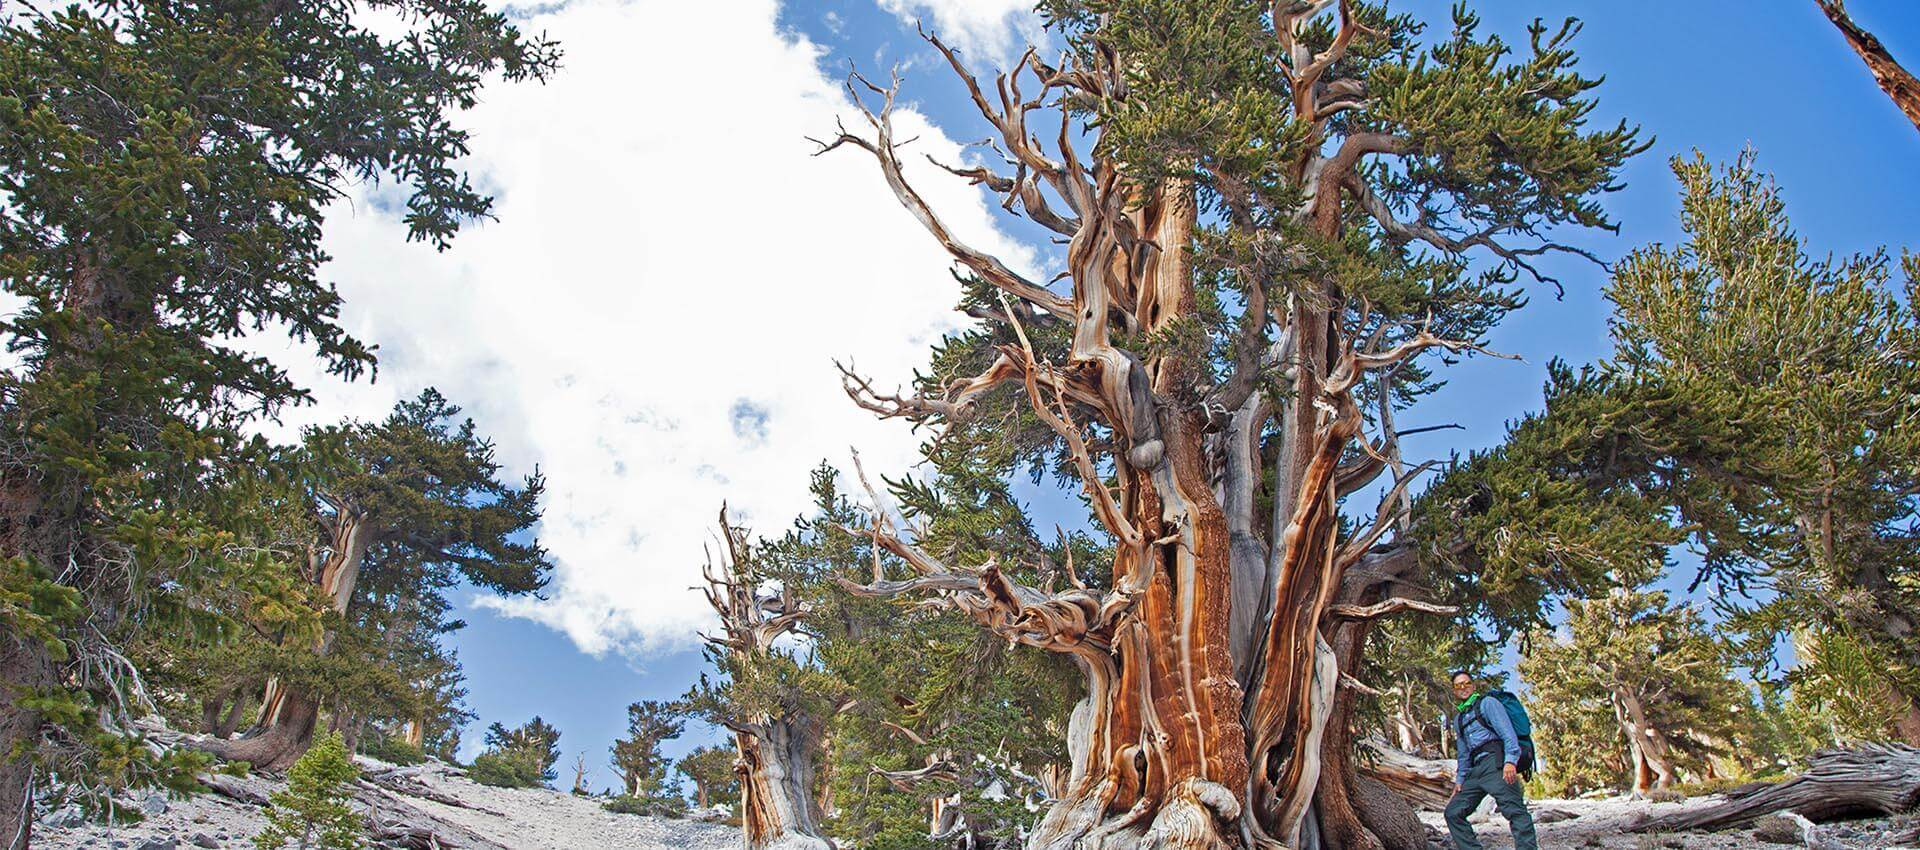 Bristlecone Pine, Nevada Bristlecone Pine, Great Basin National Park, Oldest Tree, Oldest Living Tree